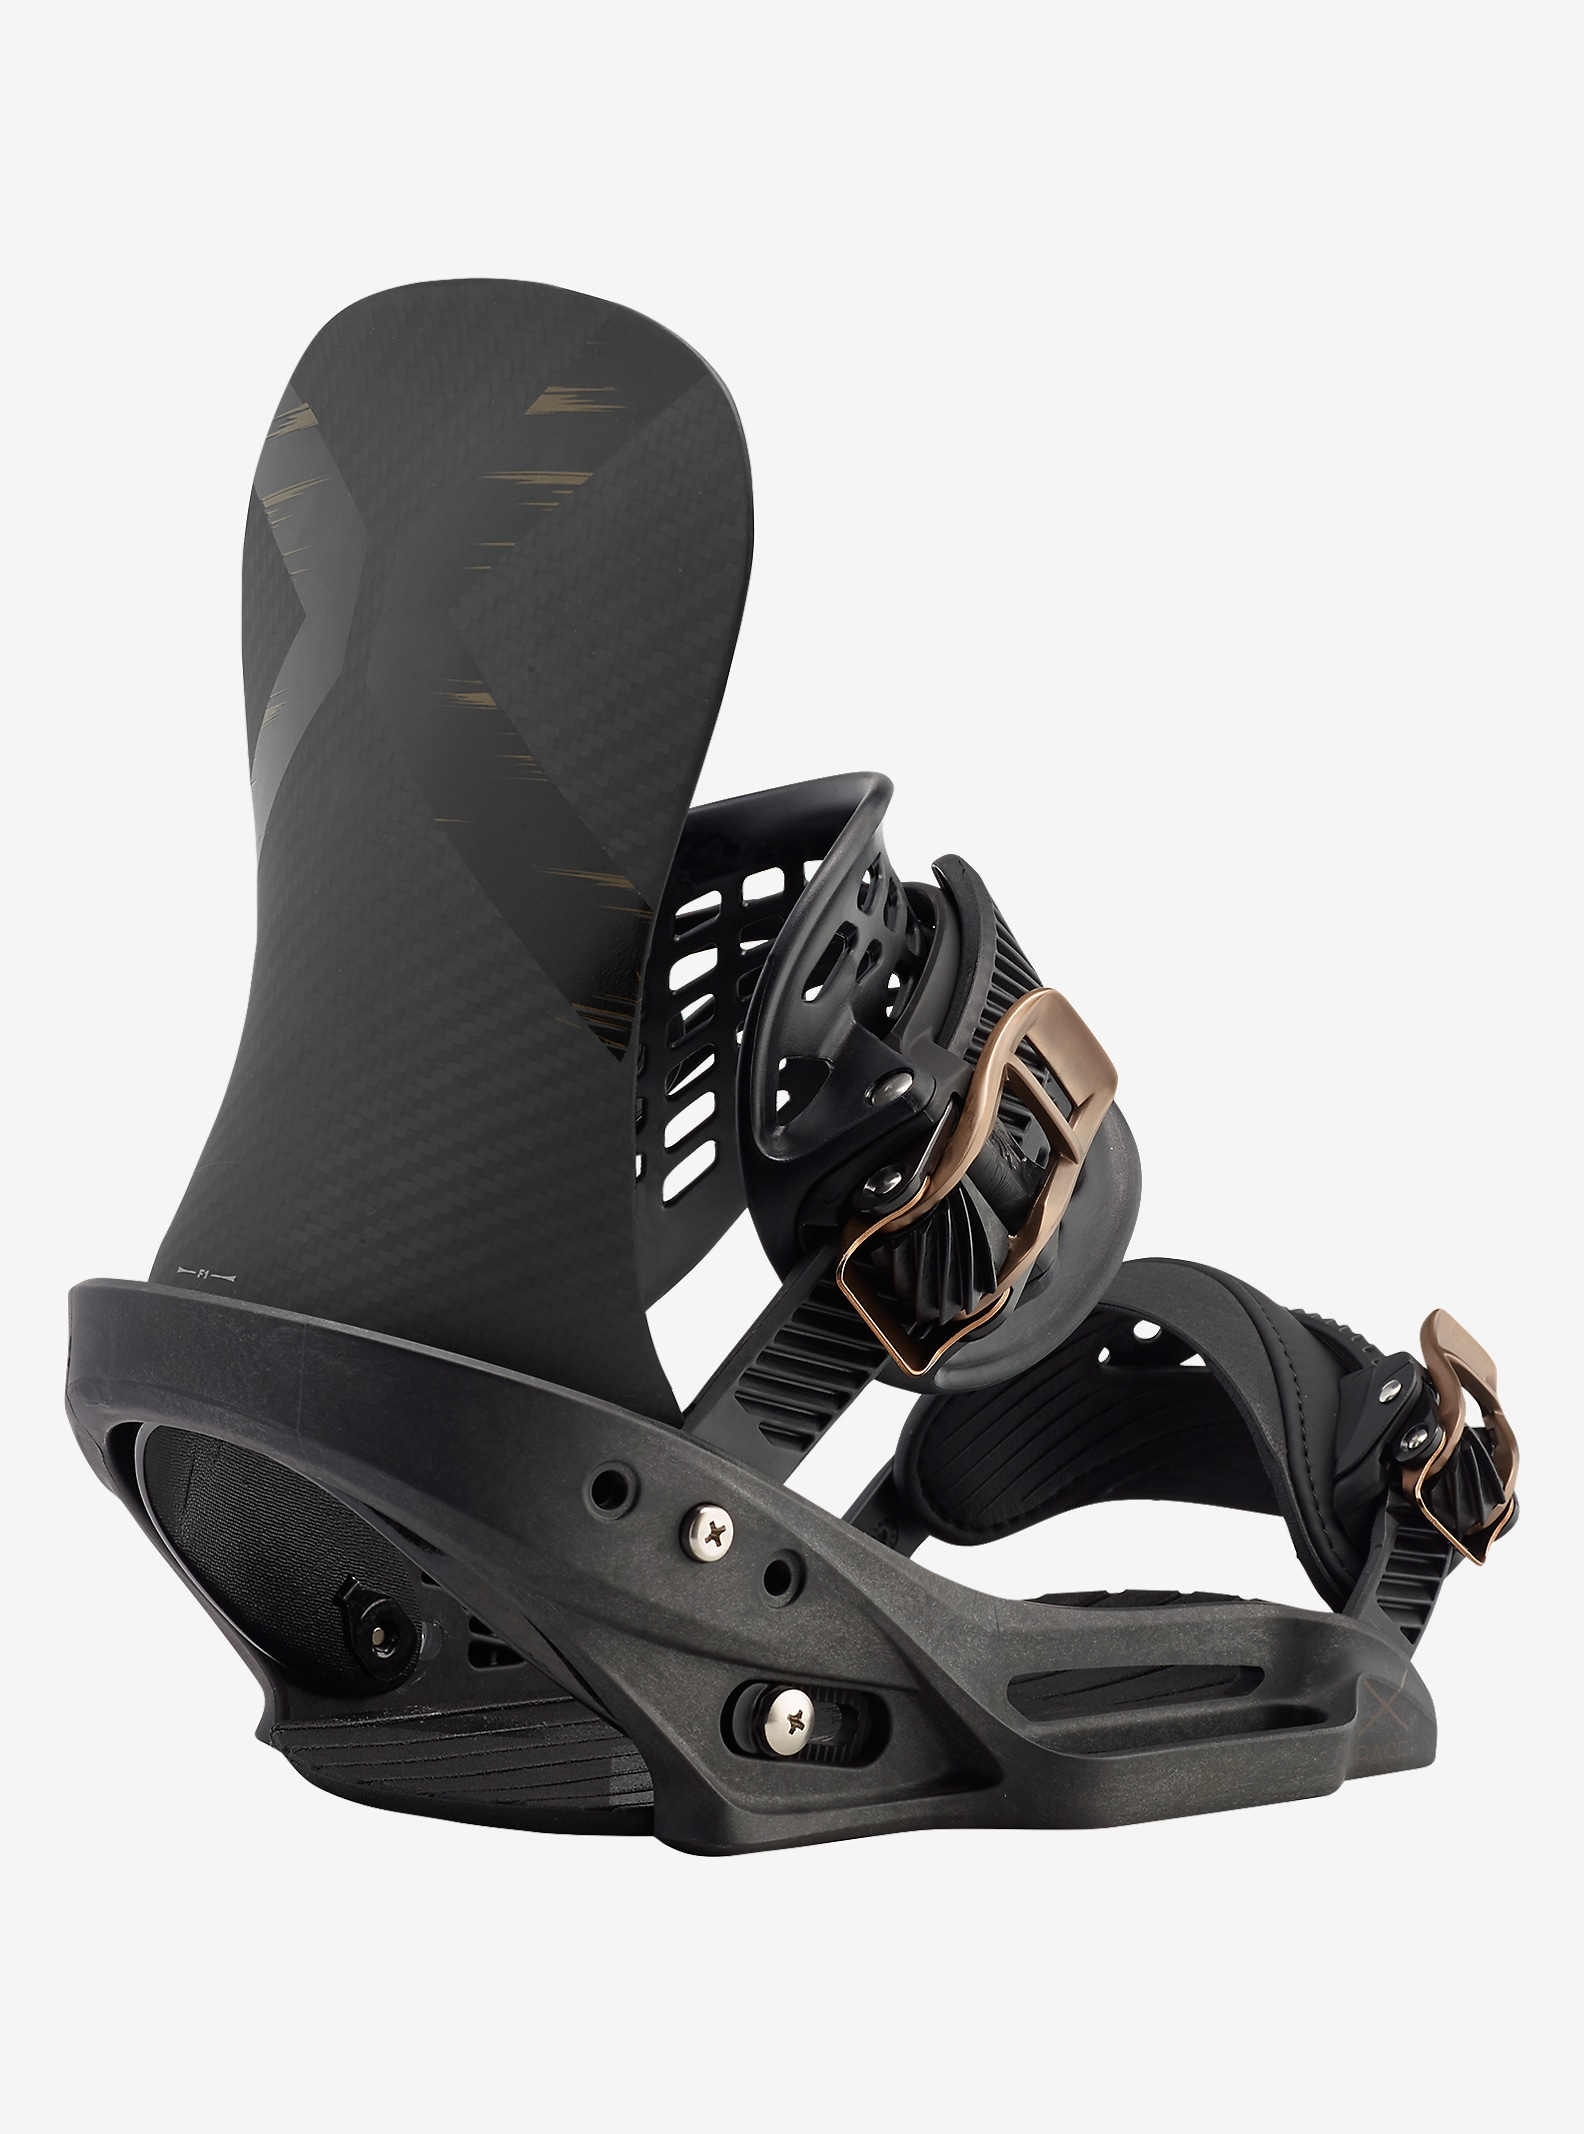 Burton X-Base EST Snowboard Binding shown in Black Mag